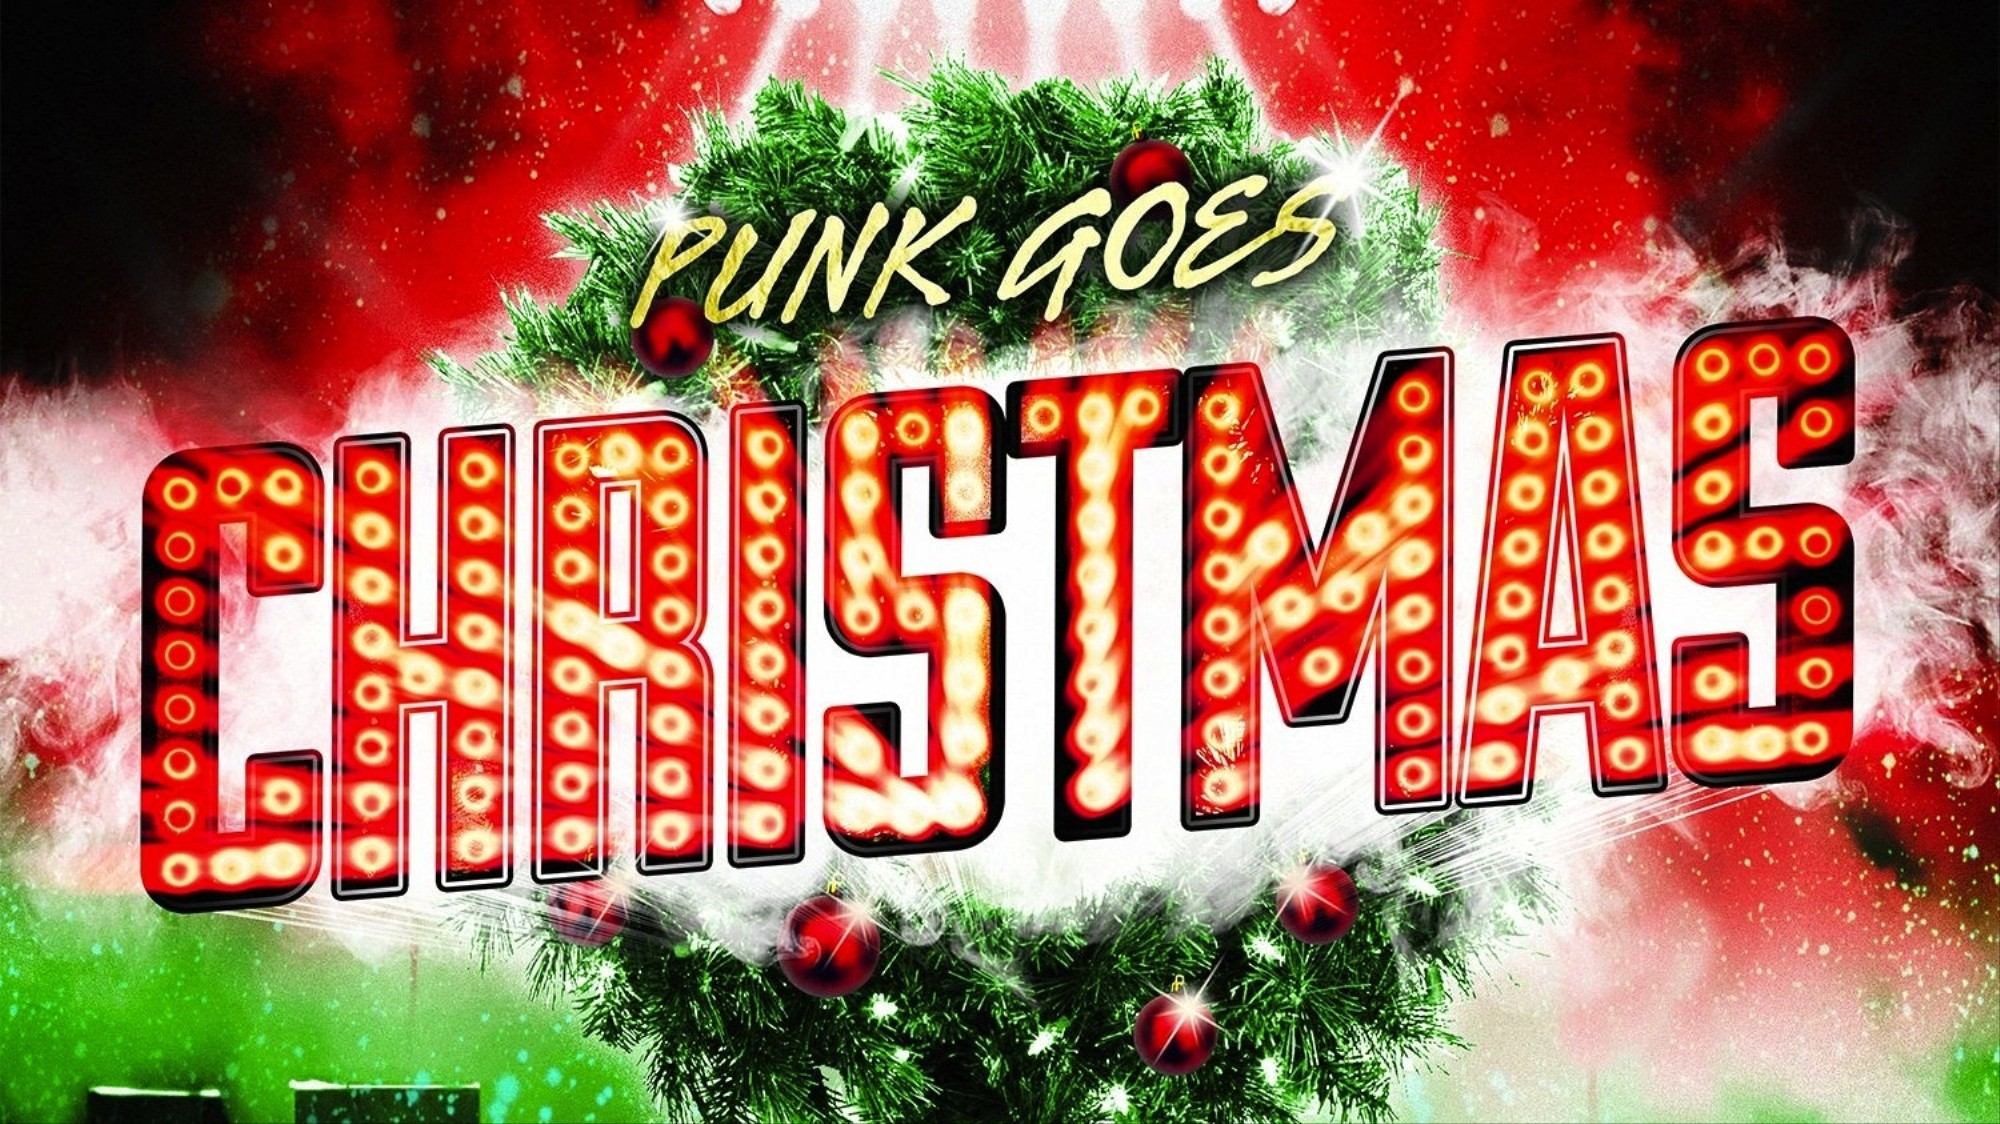 Christmas Albums.Punk Christmas Albums Are Worse Than Coal Vice